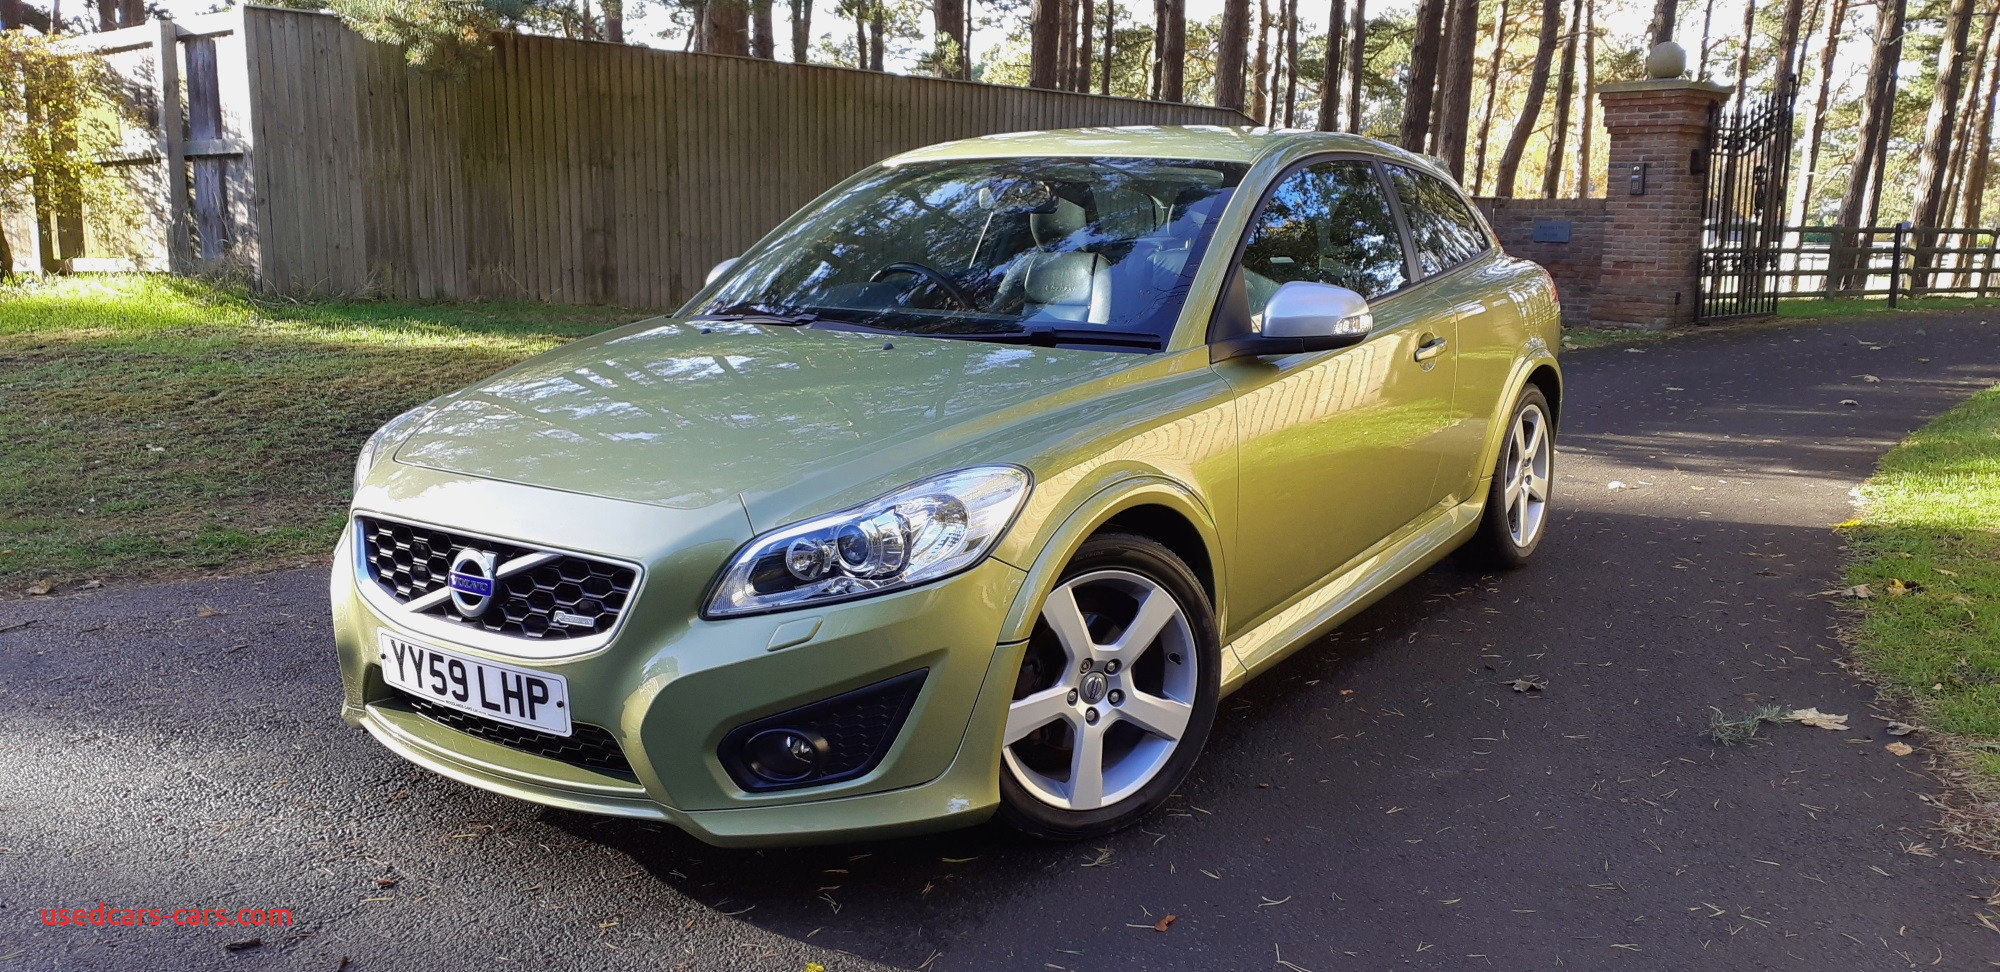 Used Cars for Sale Grimsby Fresh Volvo C30 2 0d R Design In Lime Grass Green for Sale by